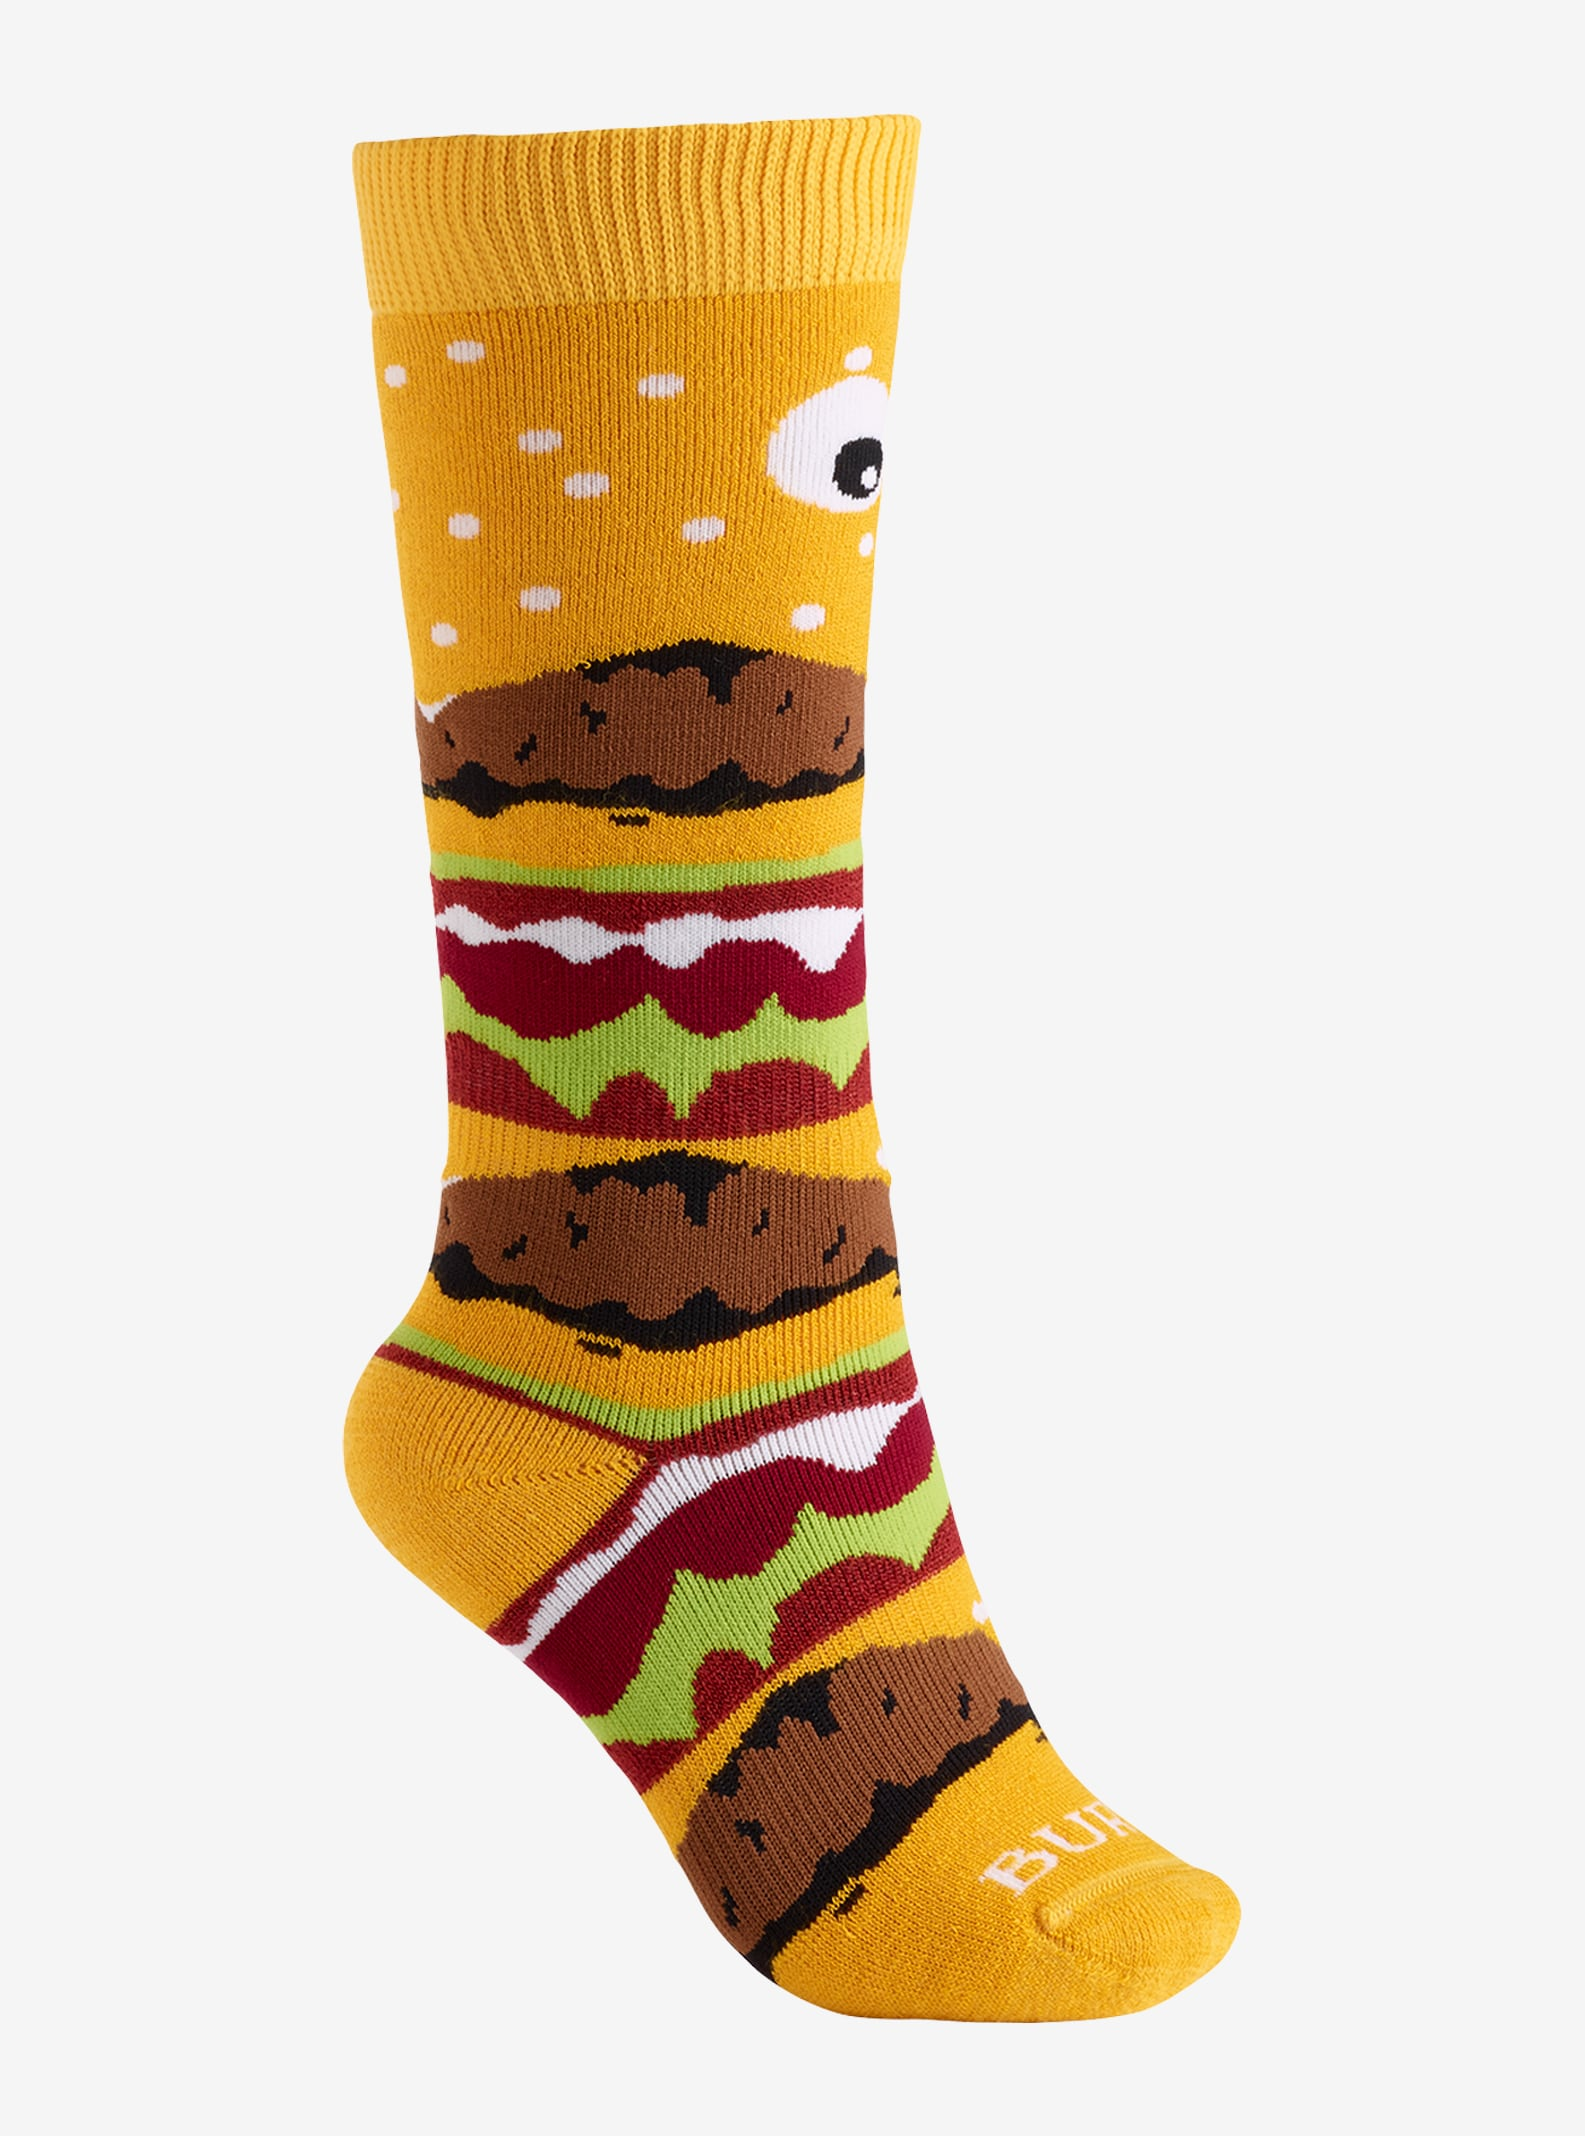 Kids' Burton Party Sock shown in Burger Deluxe